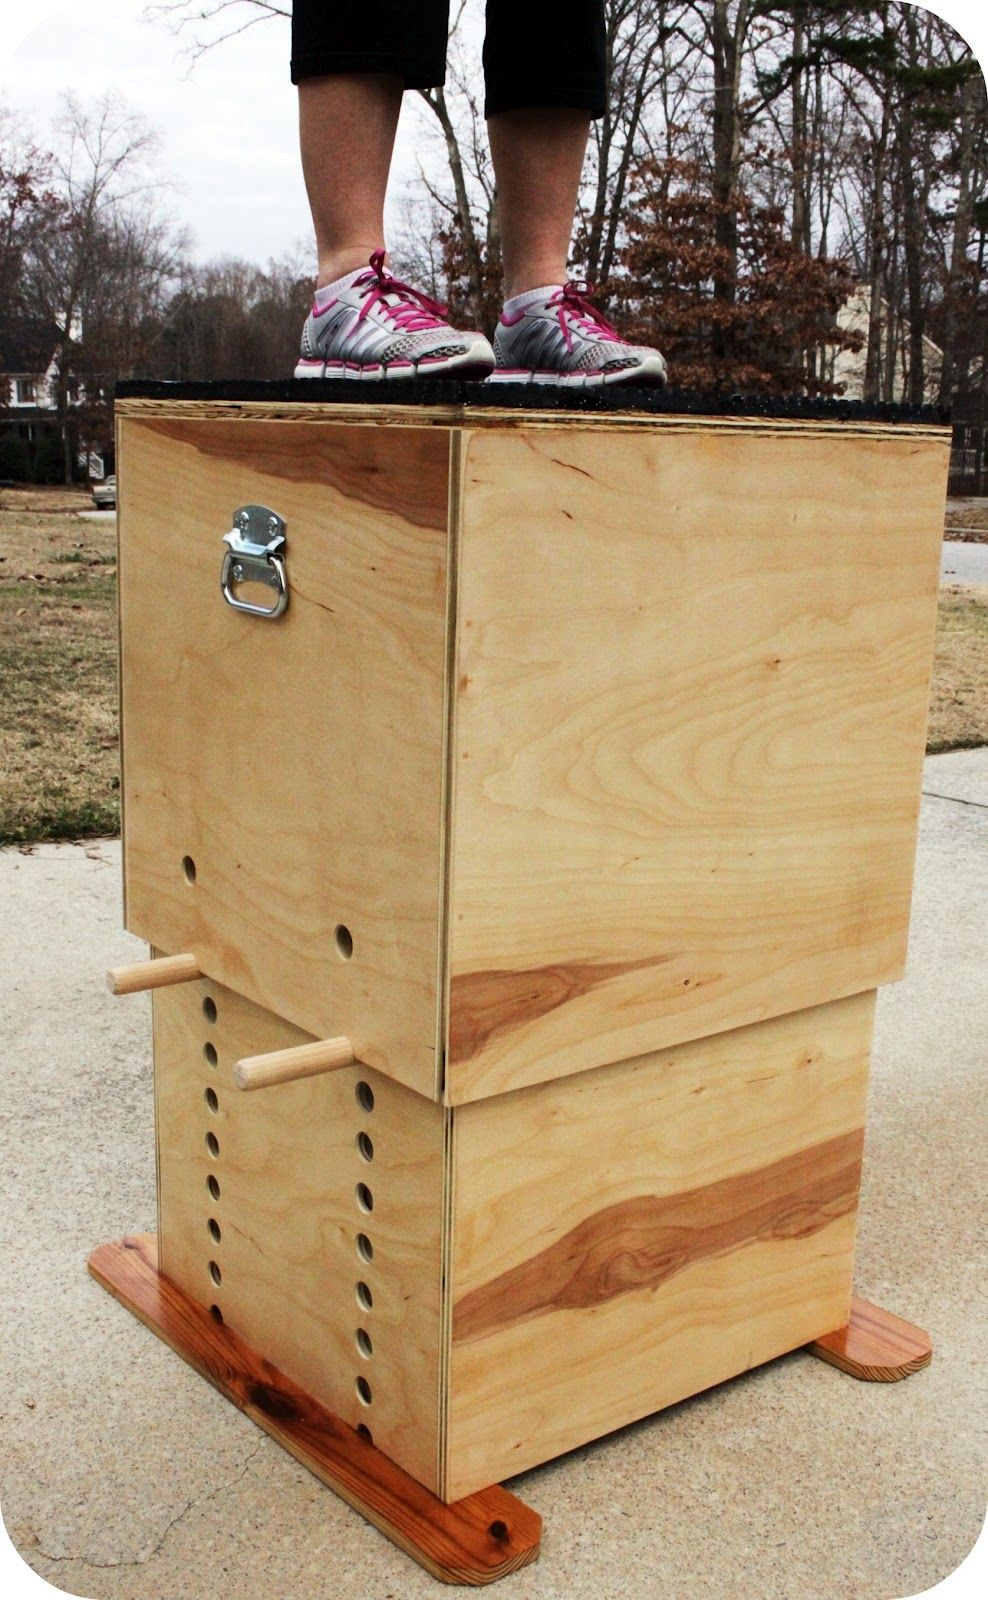 TrendyToolbox: ADJUSTABLE WOODEN PLYO BOX | Diy CrossFit gym in garage | Pinterest | Box, Gym ...